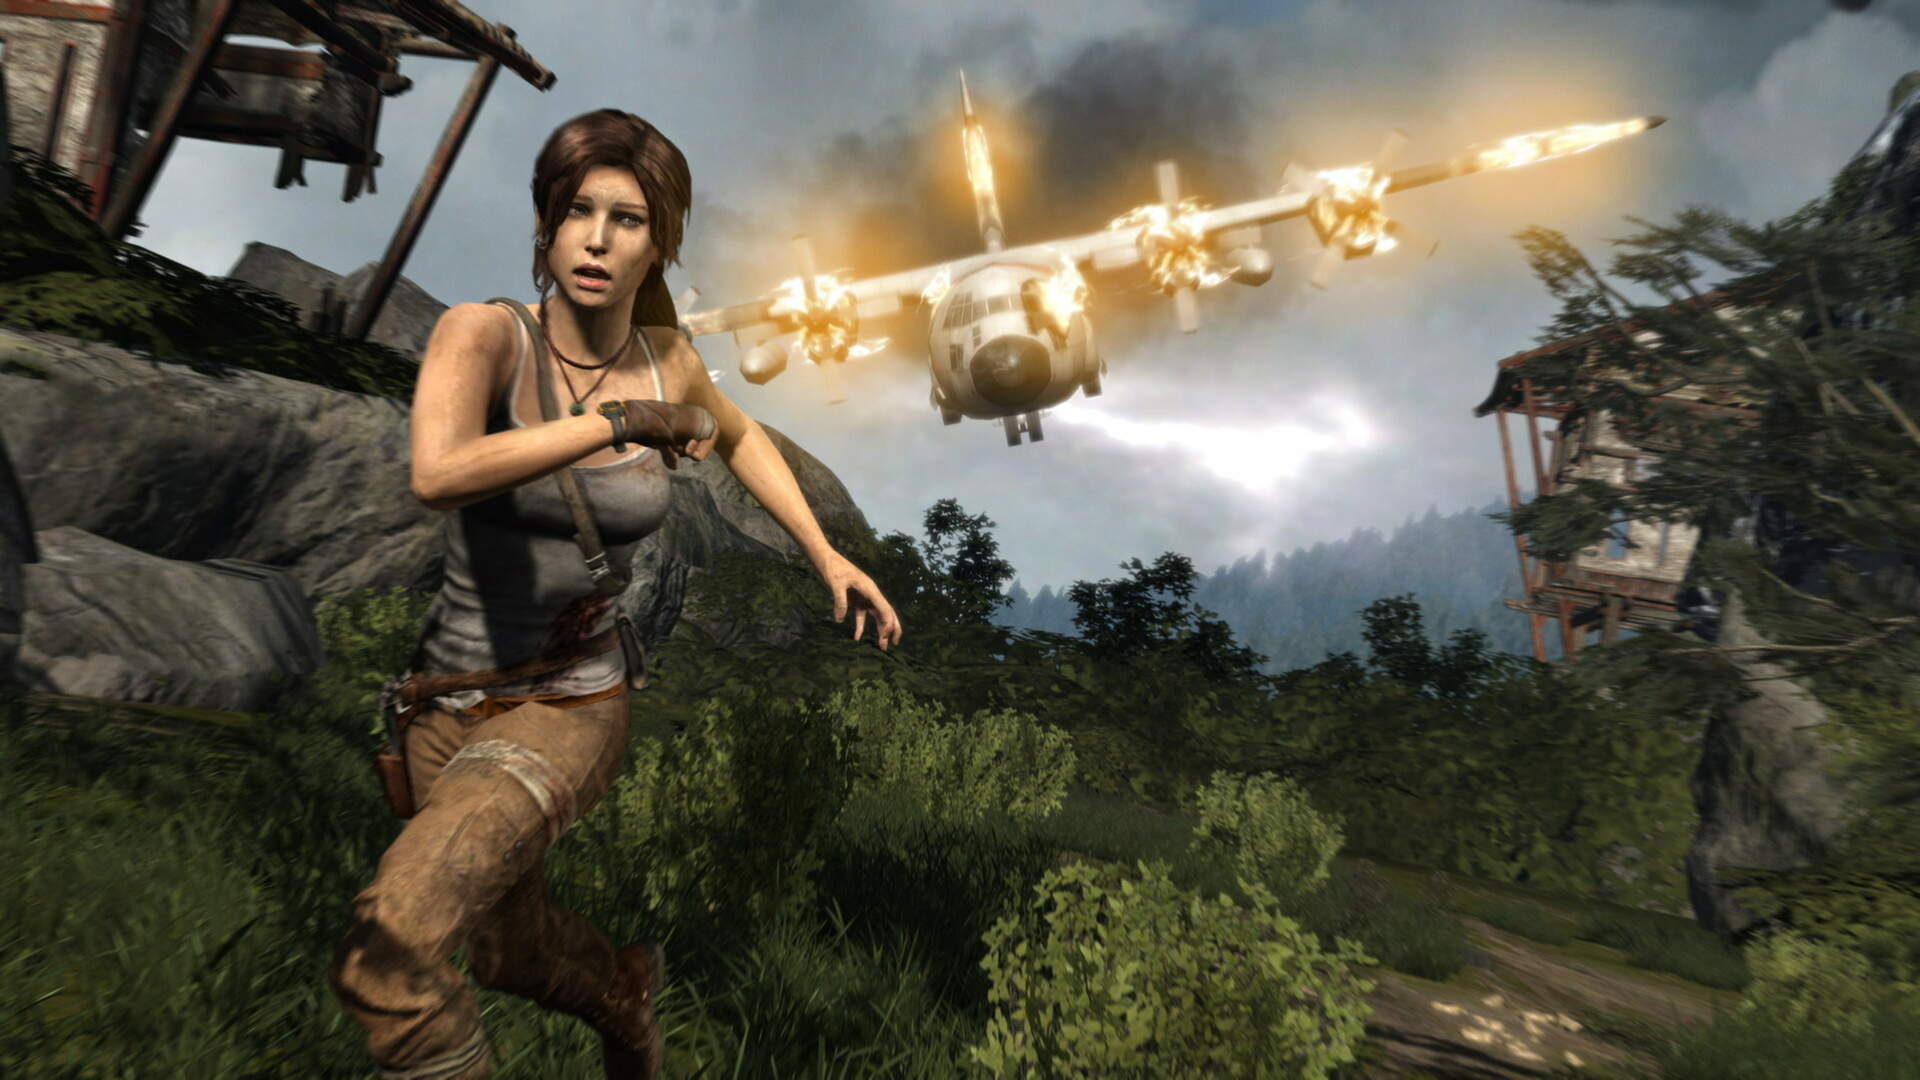 Writers' Guild Awards Honor Three Games' Stories